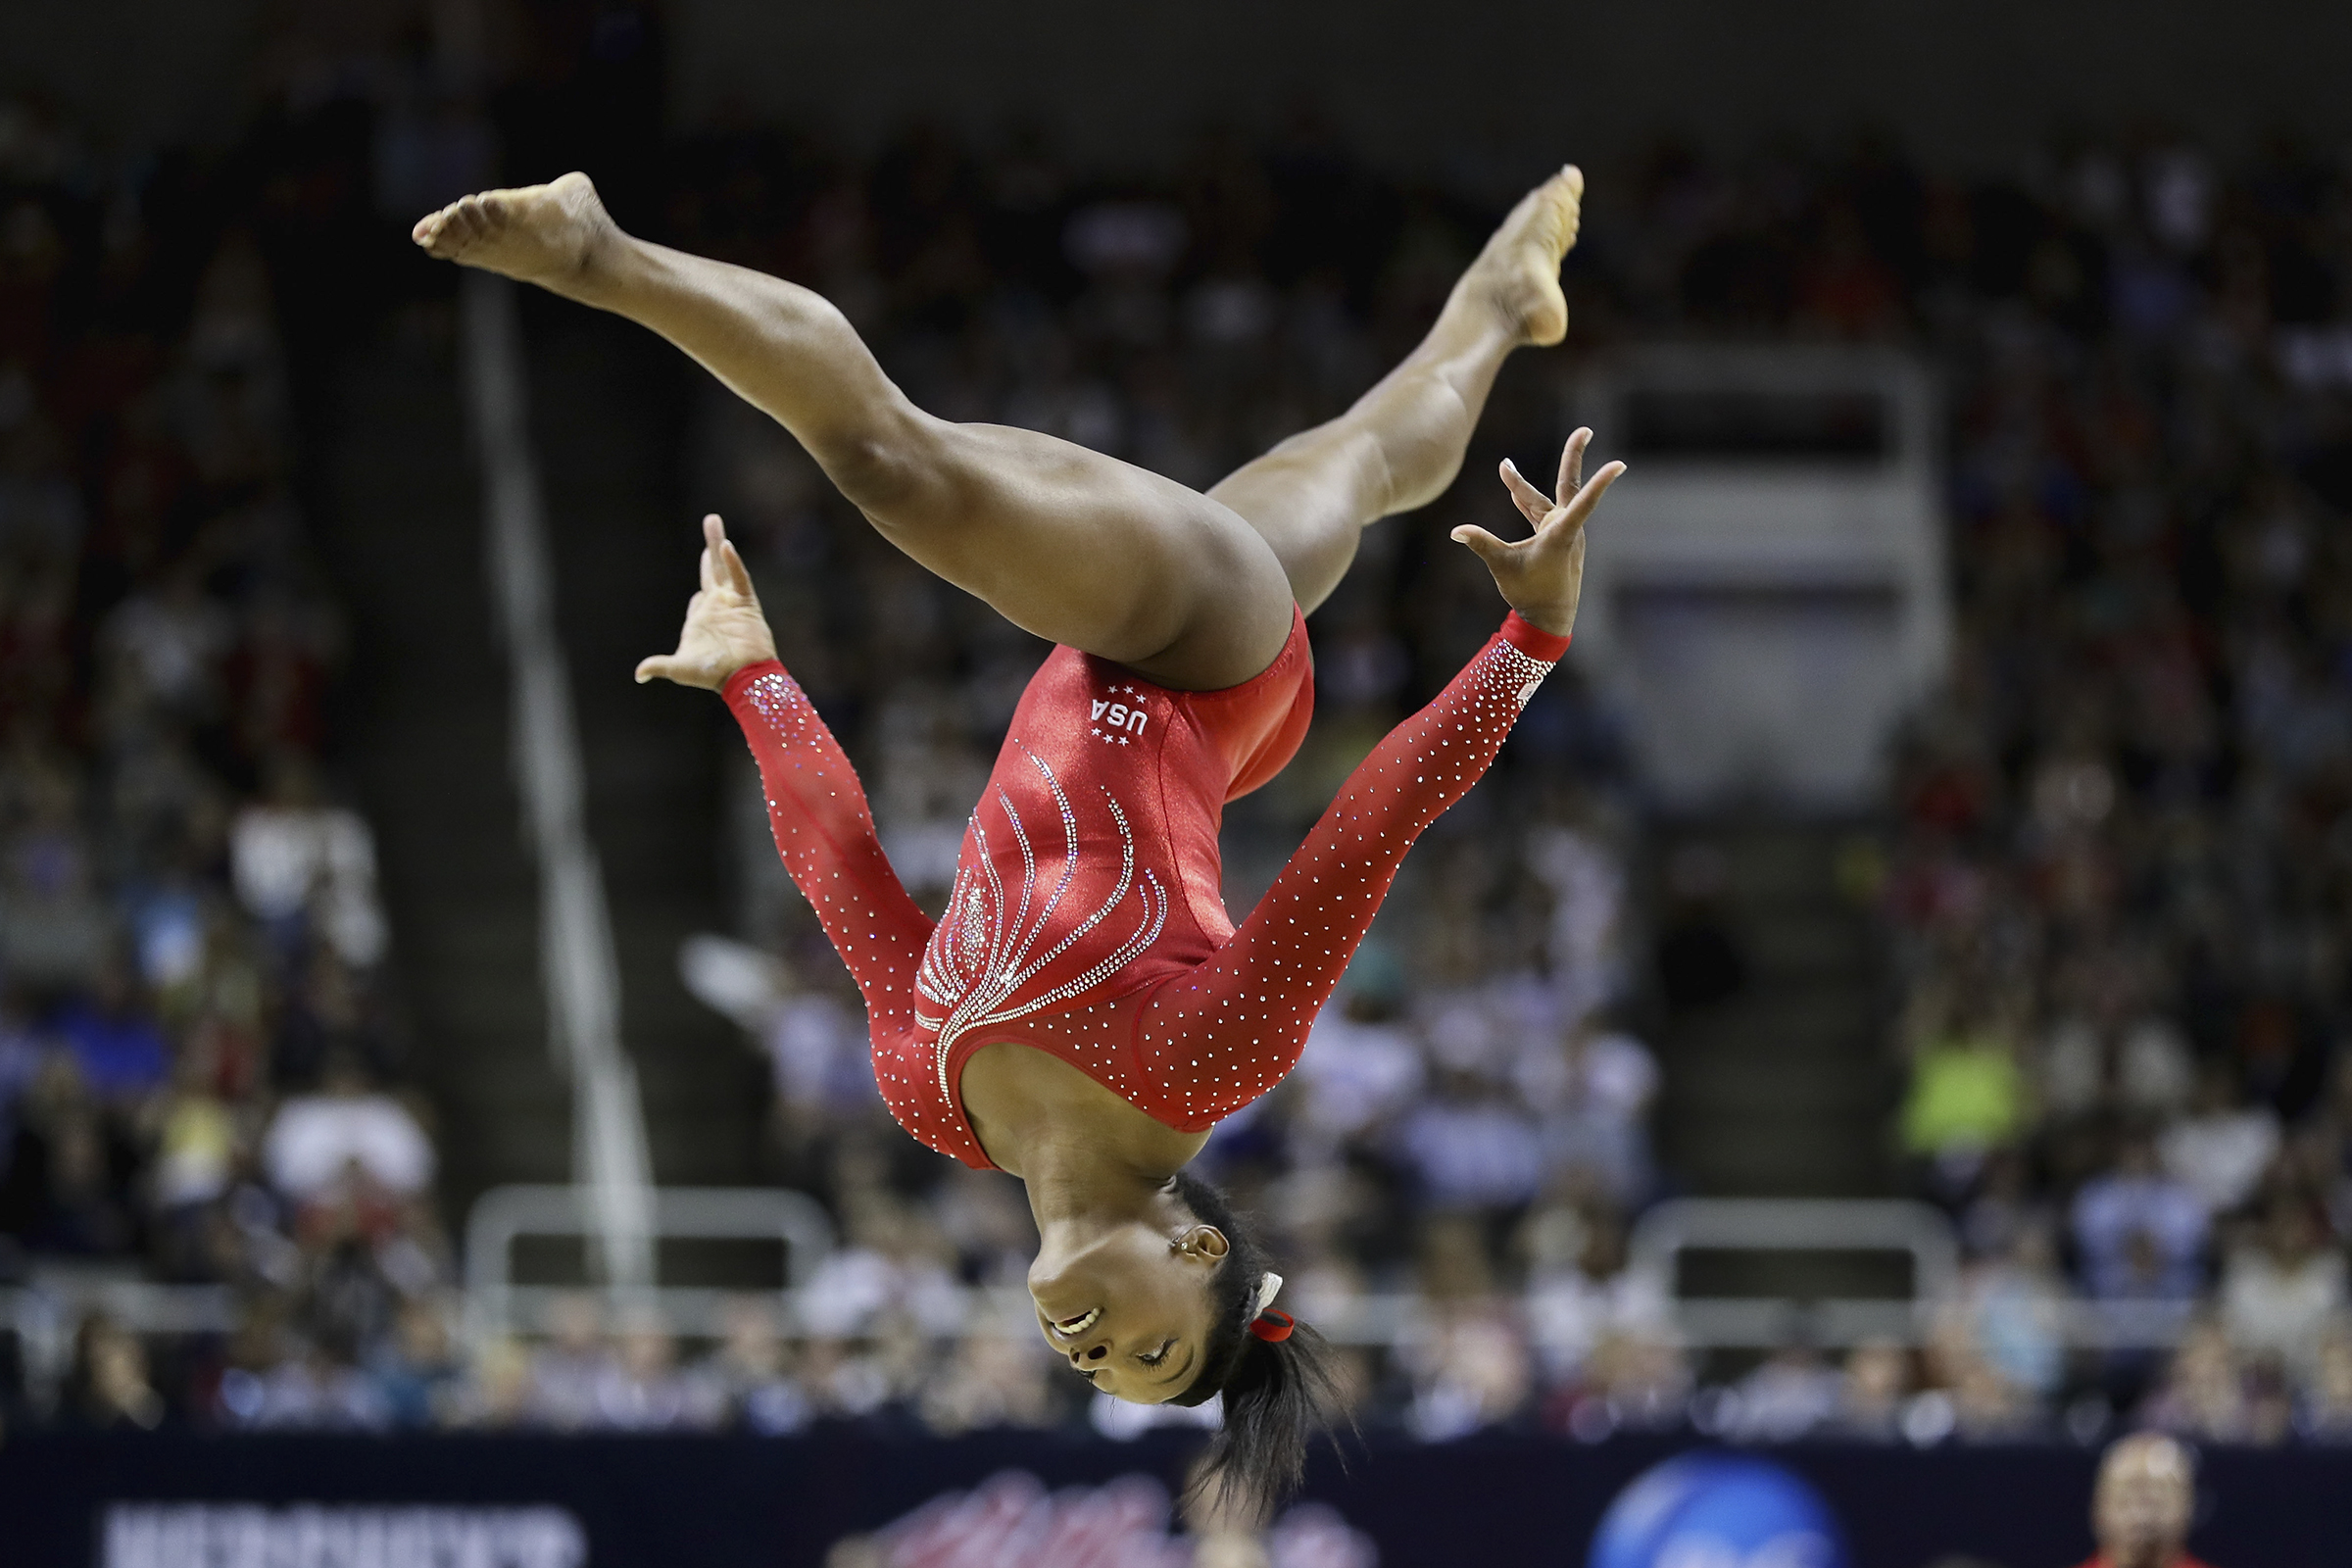 SAN JOSE, CA - JULY 10: Simone Biles competes in the floor exercise during Day 2 of the 2016 U.S. Women's Gymnastics Olympic Trials at SAP Center on July 10, 2016 in San Jose, California.   Ezra Shaw/Getty Images/AFP